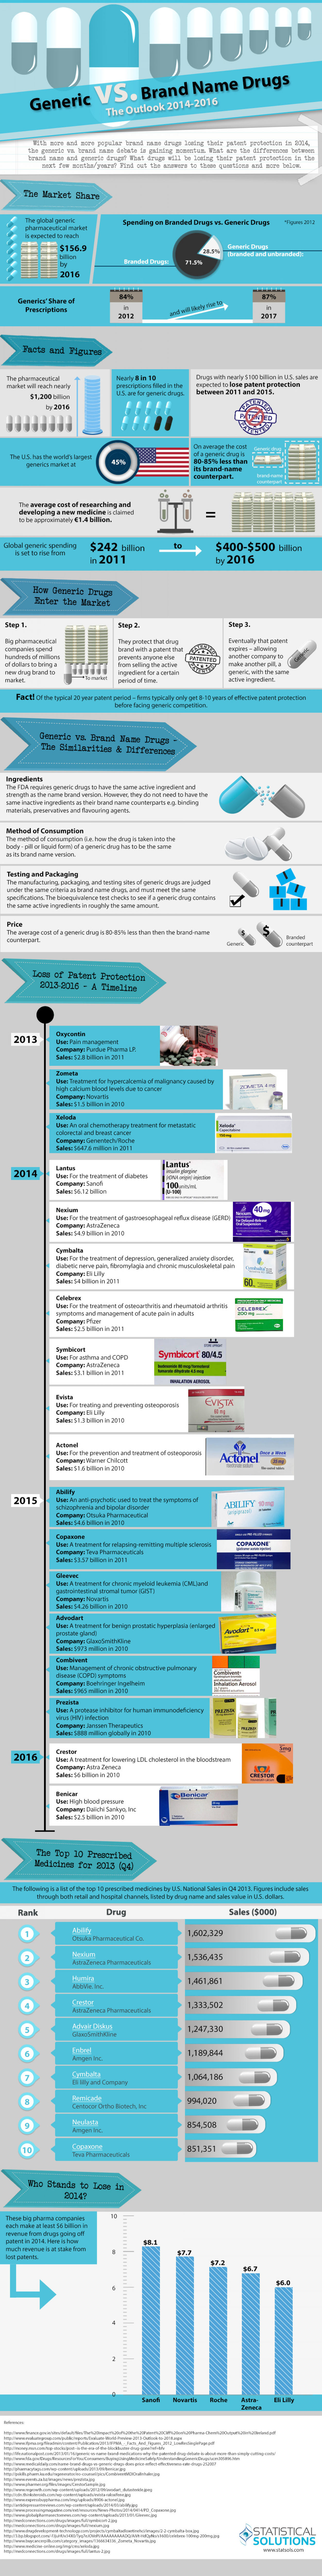 Generic vs. Brand Name Drugs: The Outlook 2014-2016 Infographic